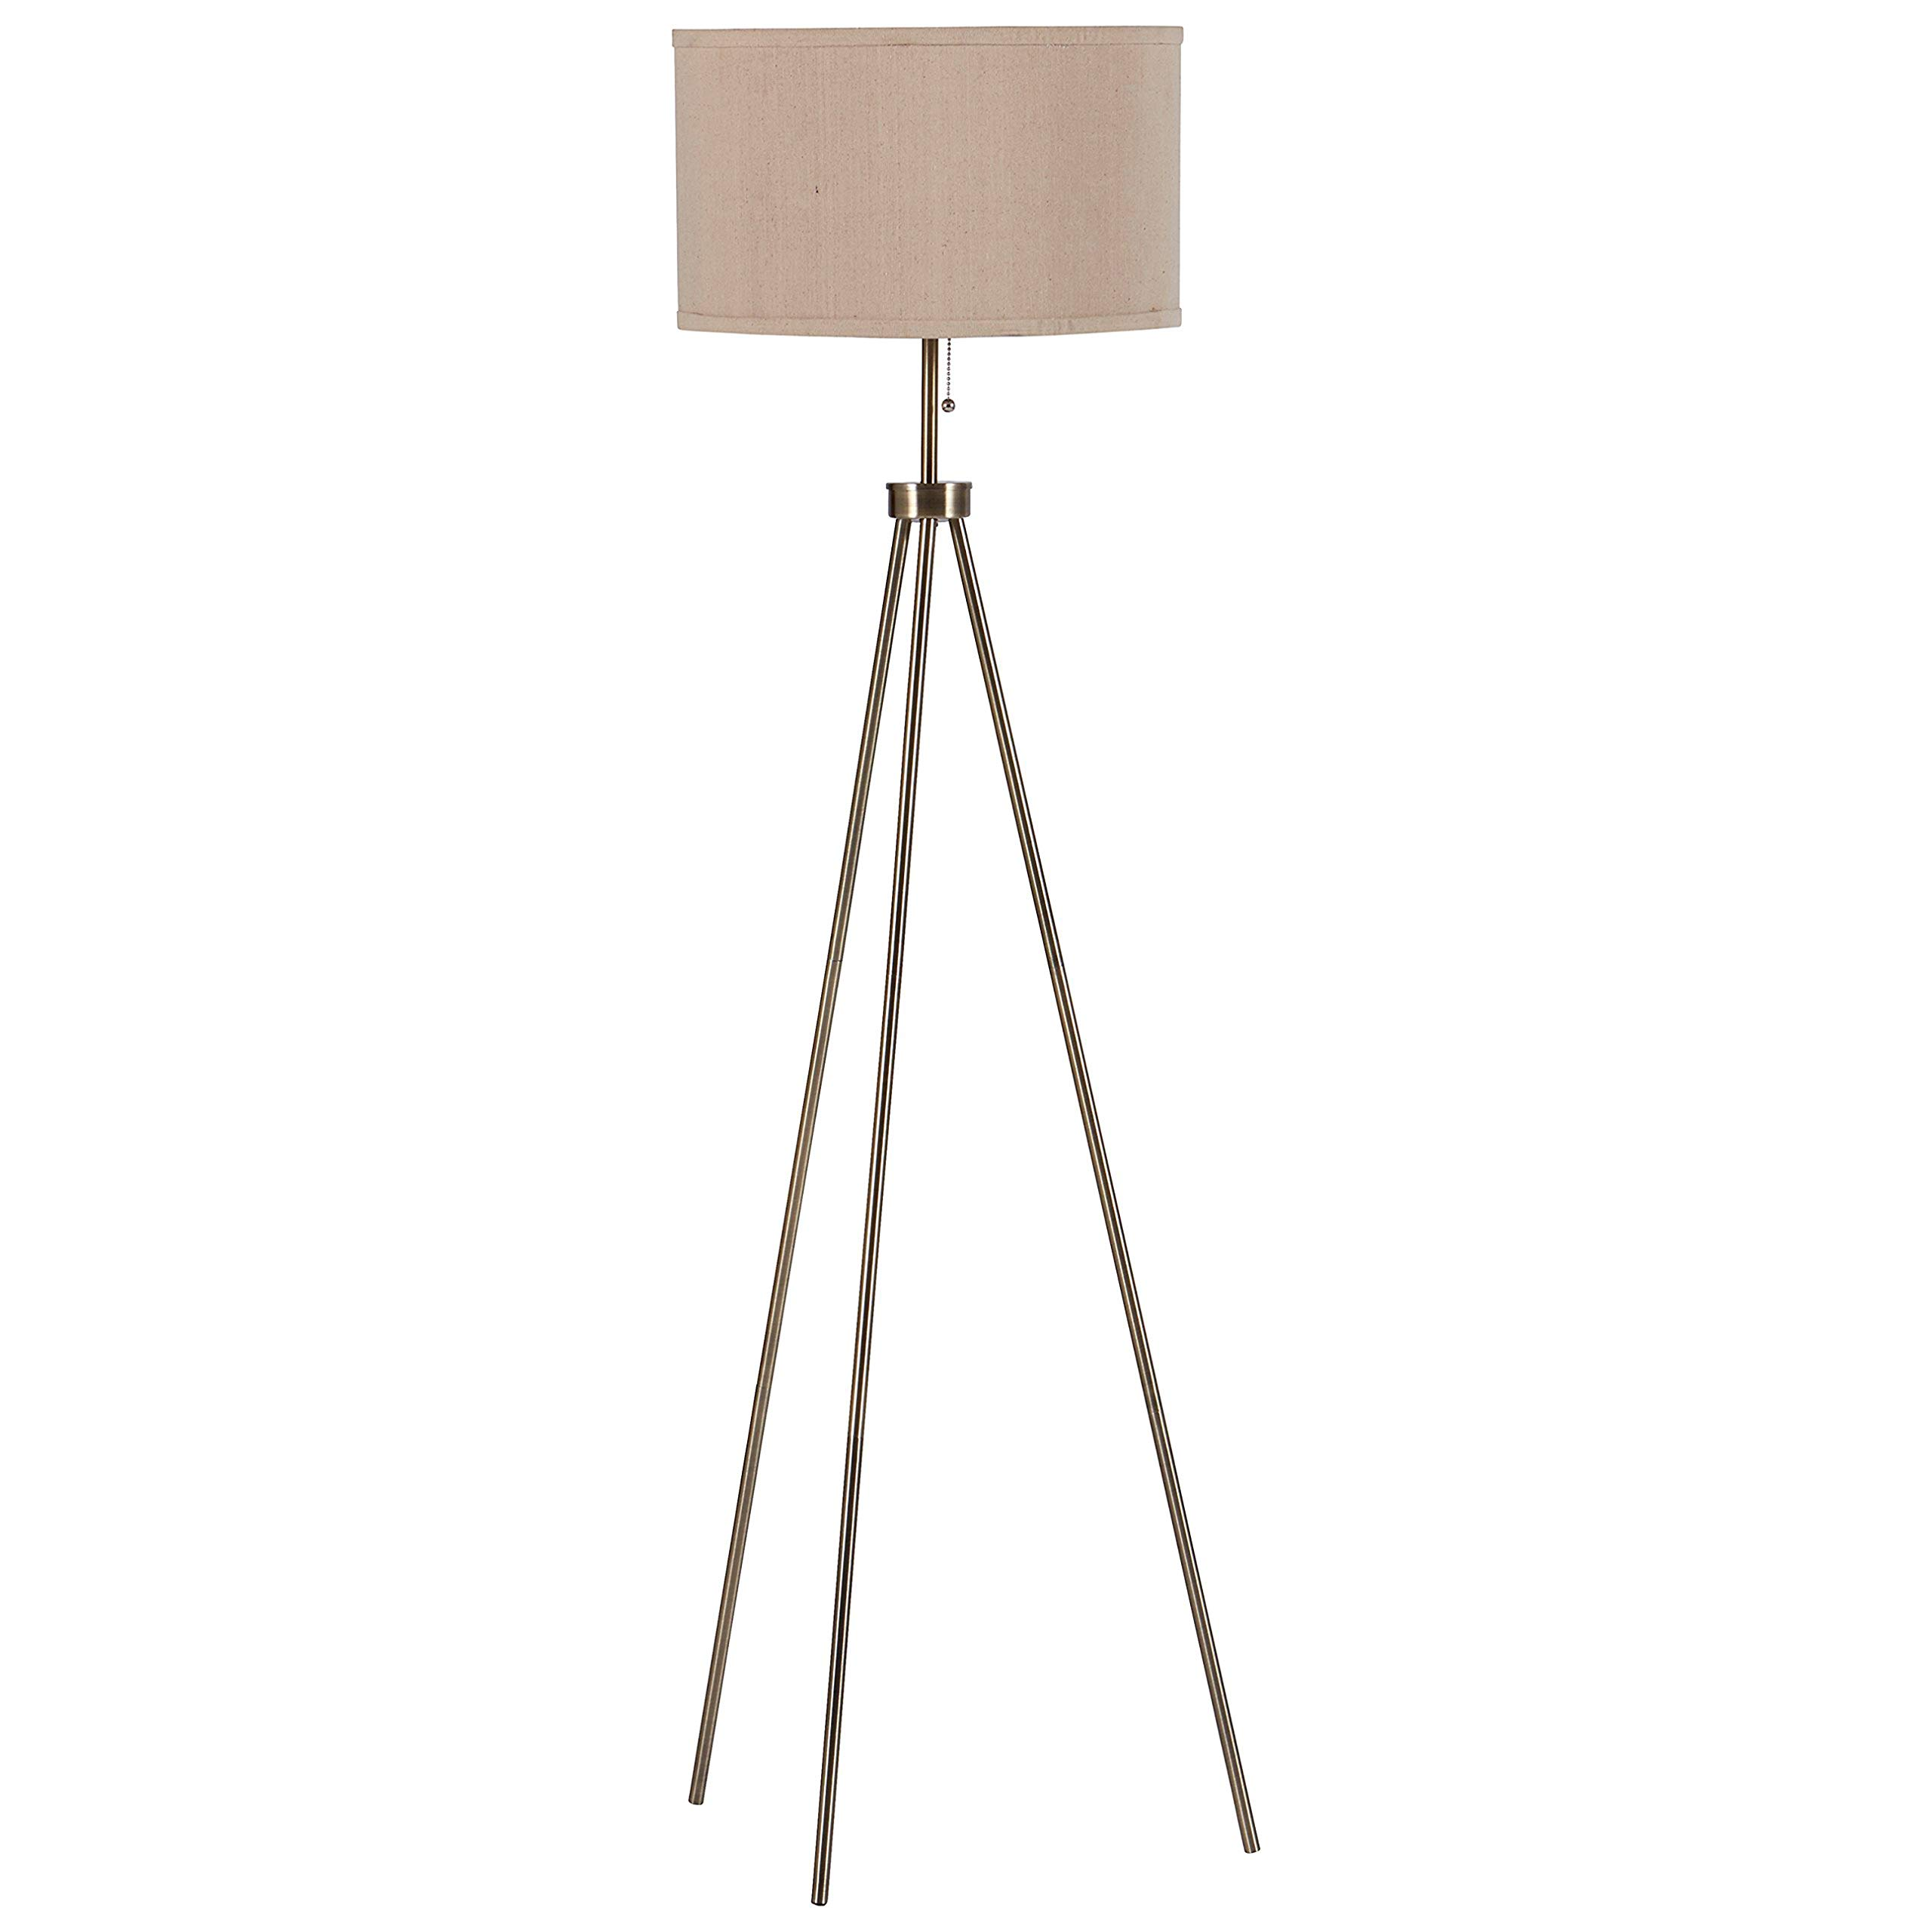 """Rivet Mid-Century Modern Tripod Living Room Decor Floor Lamp With Light Bulb And Drum Shade, 58.25""""H, Antique Brass"""